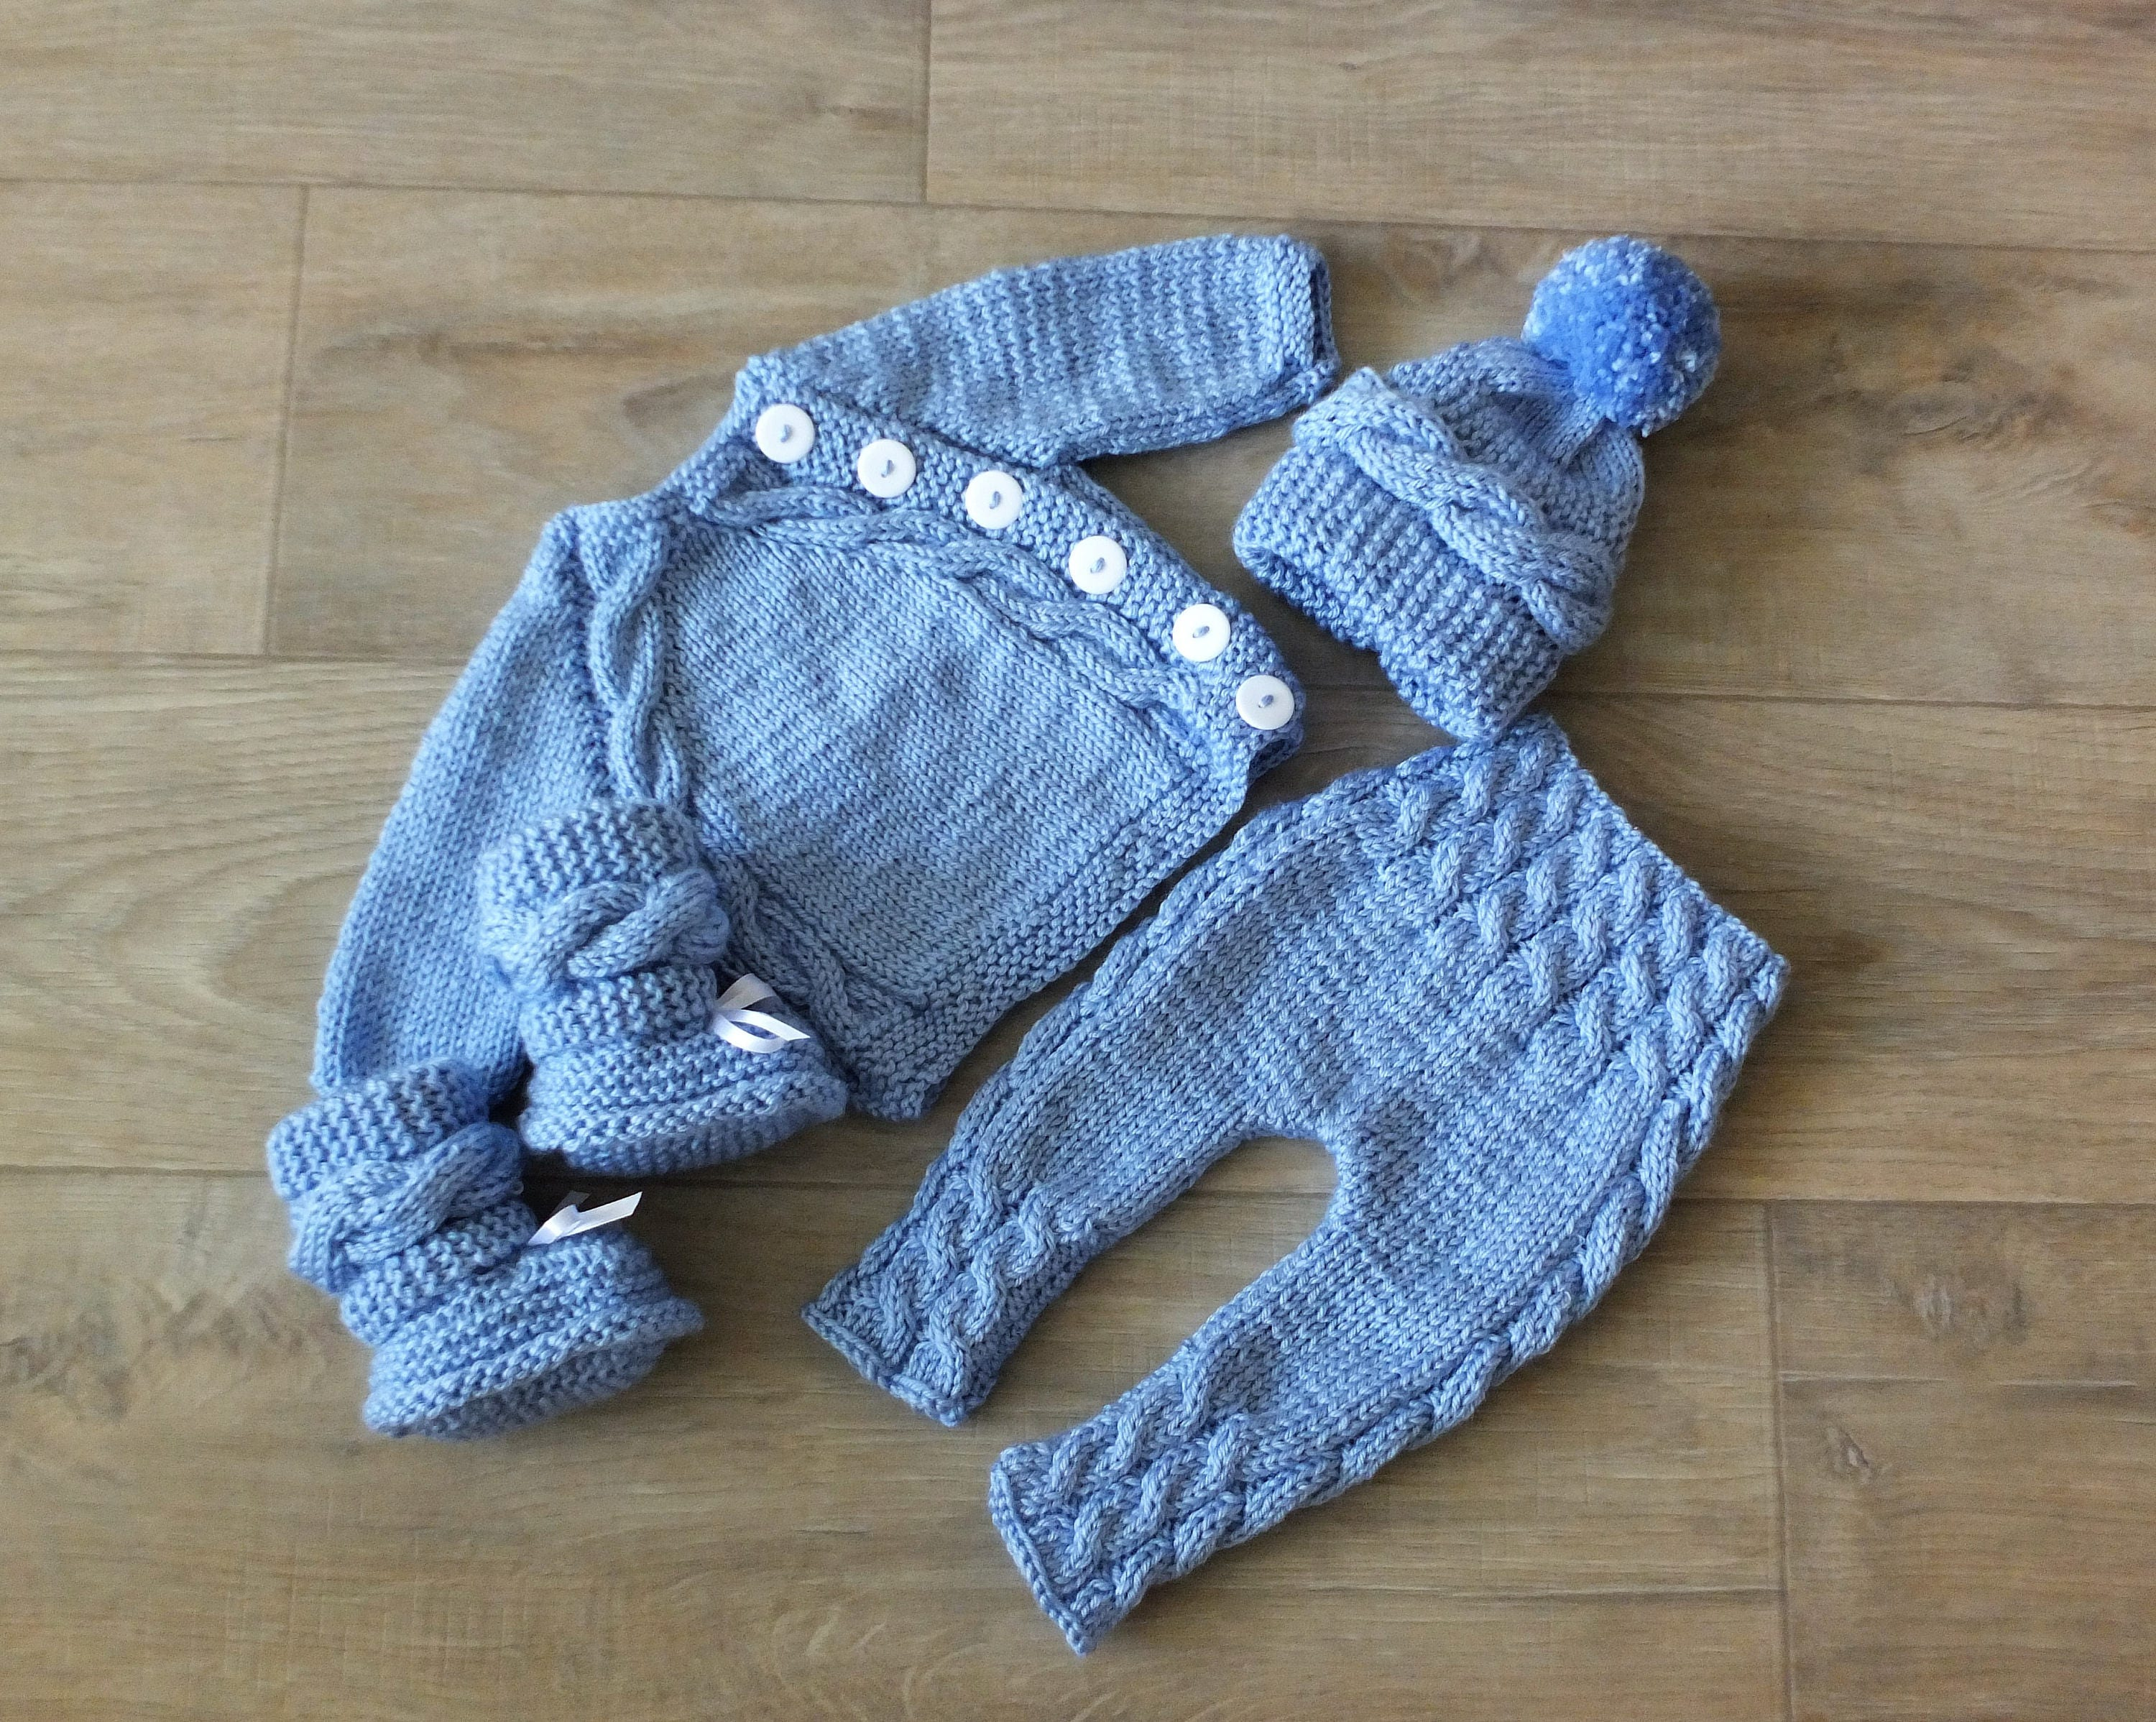 c1c9bfc8eb8 Knitted Baby boy coming home outfit Knit Baby Outfit